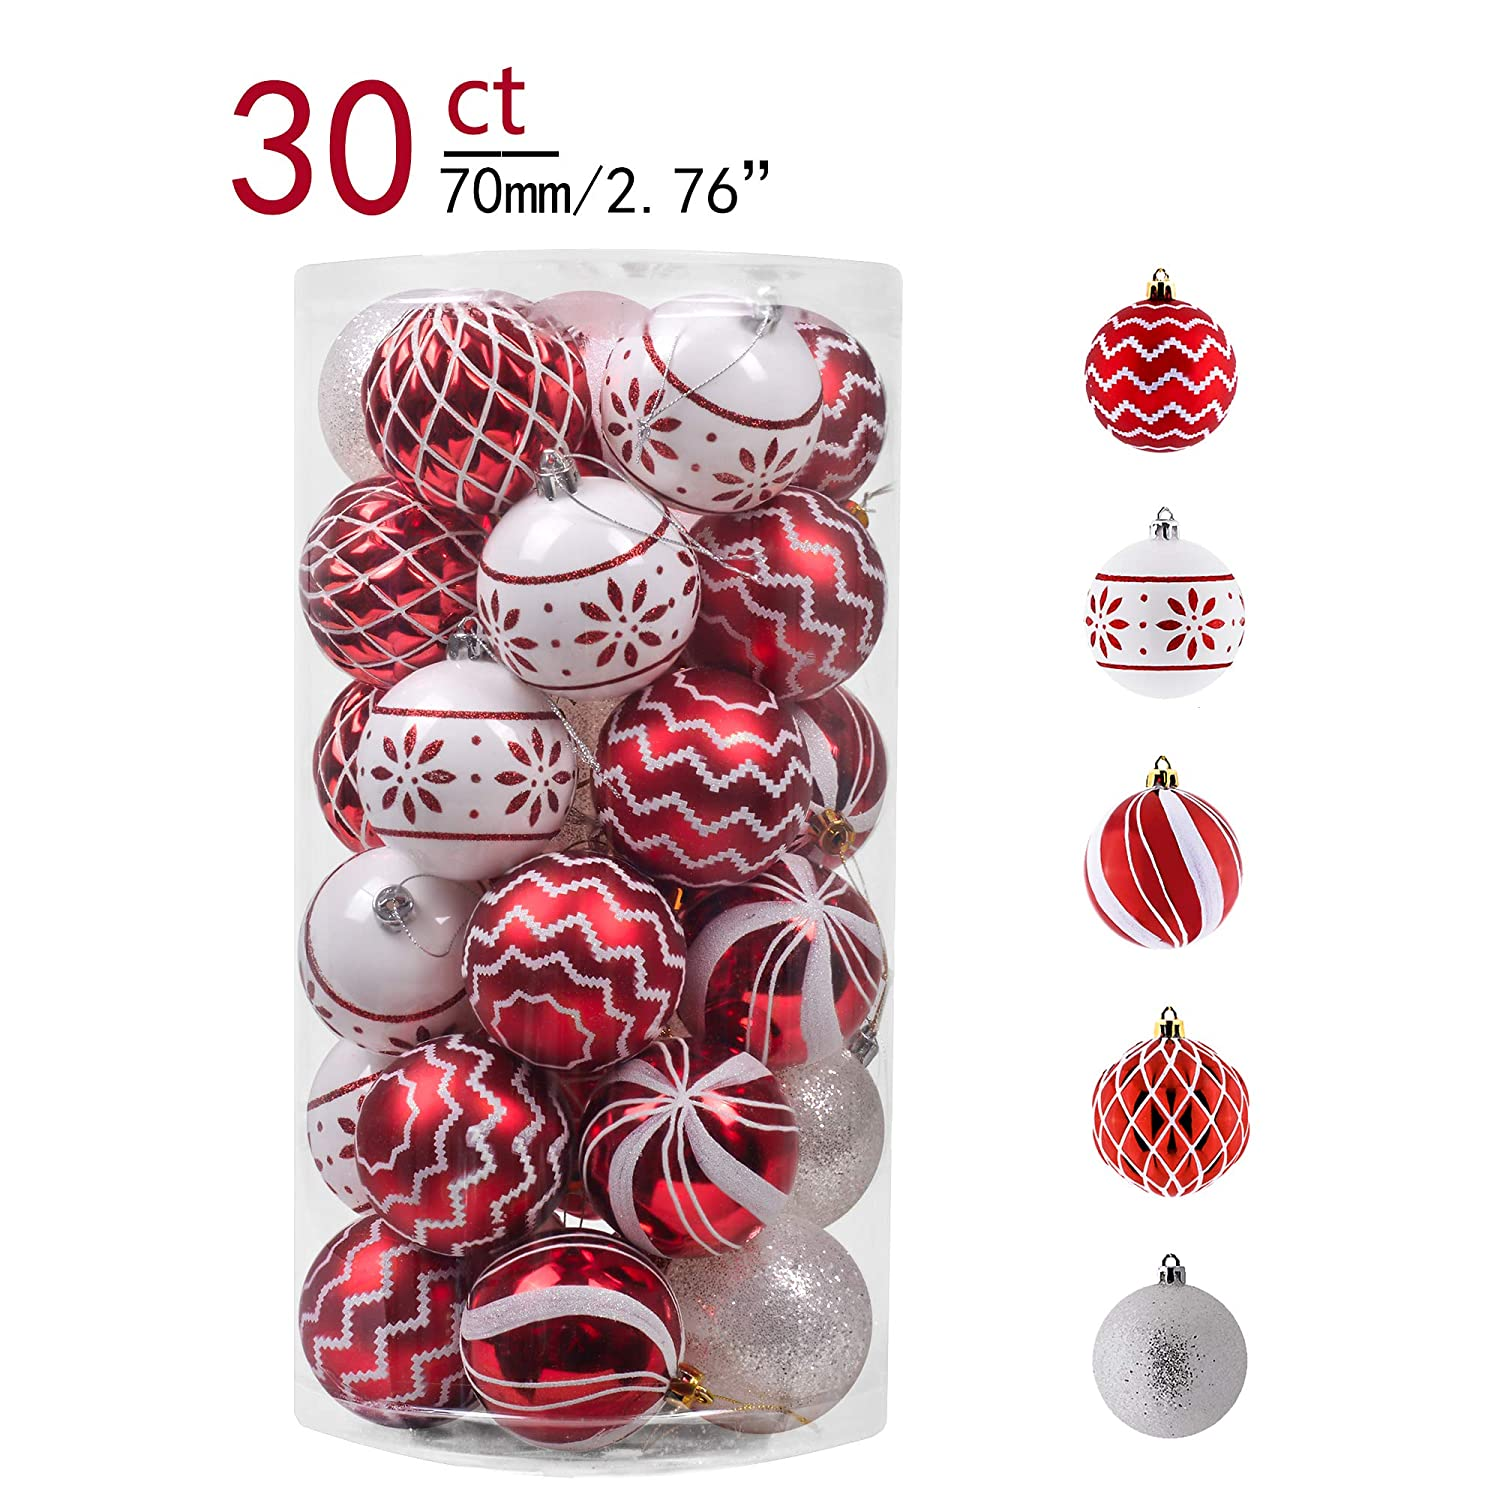 Teresa's Collections 30ct 70mm Traditional Red and White Shatterproof Christmas Ball Ornaments Decoration,Themed with Tree Skirt(Not Included)